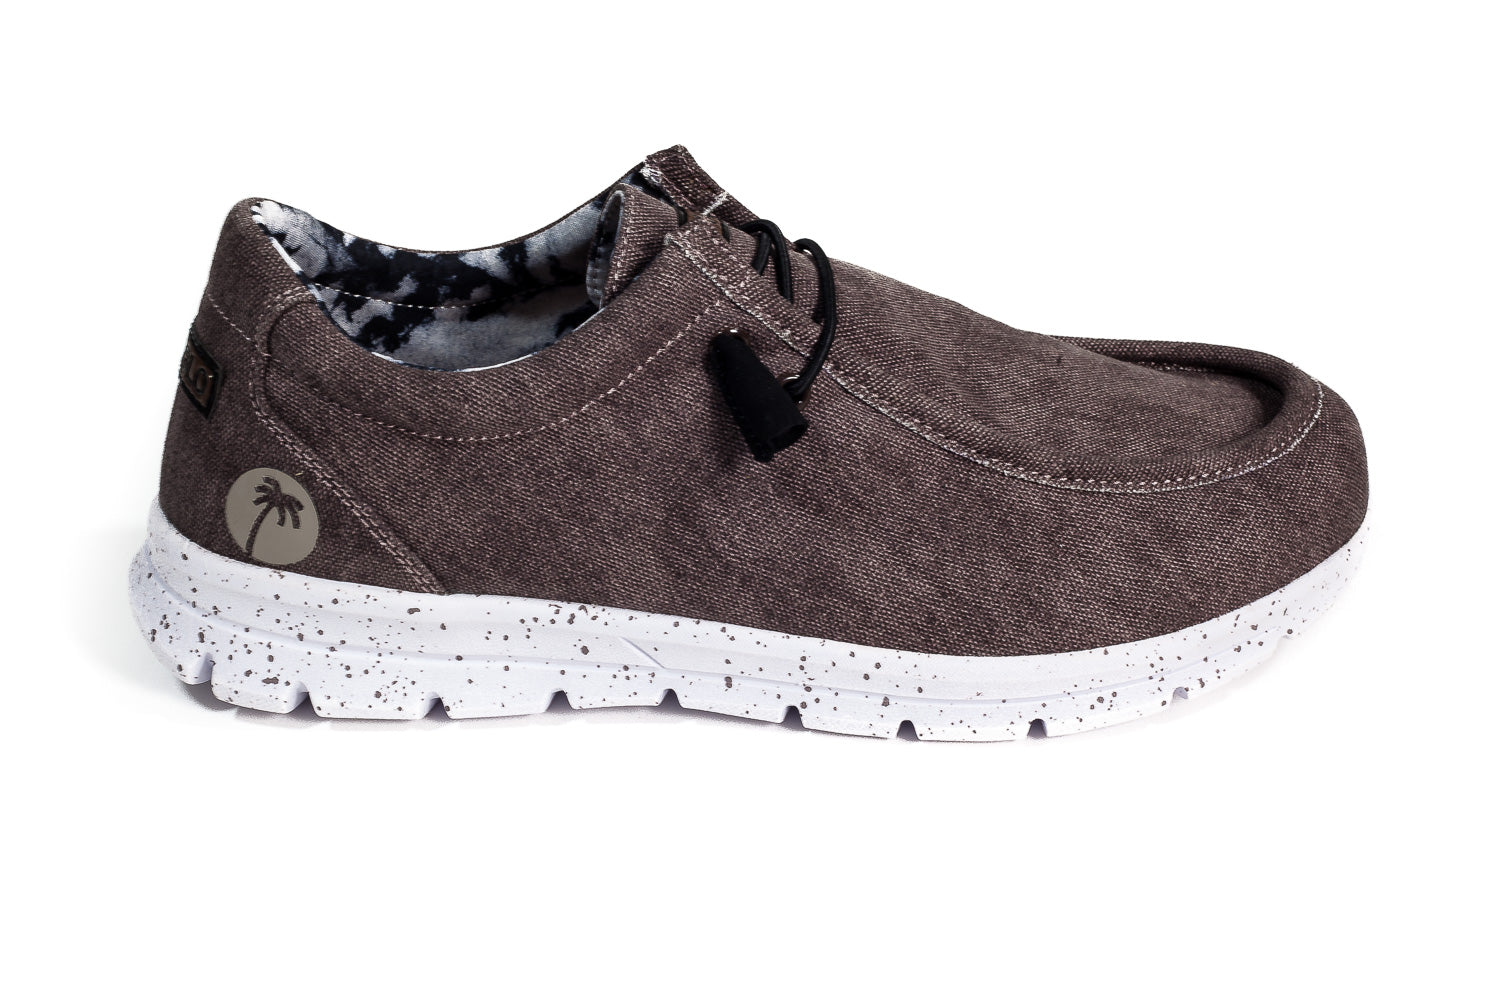 Scarpa JUNGLO Dark Coffee